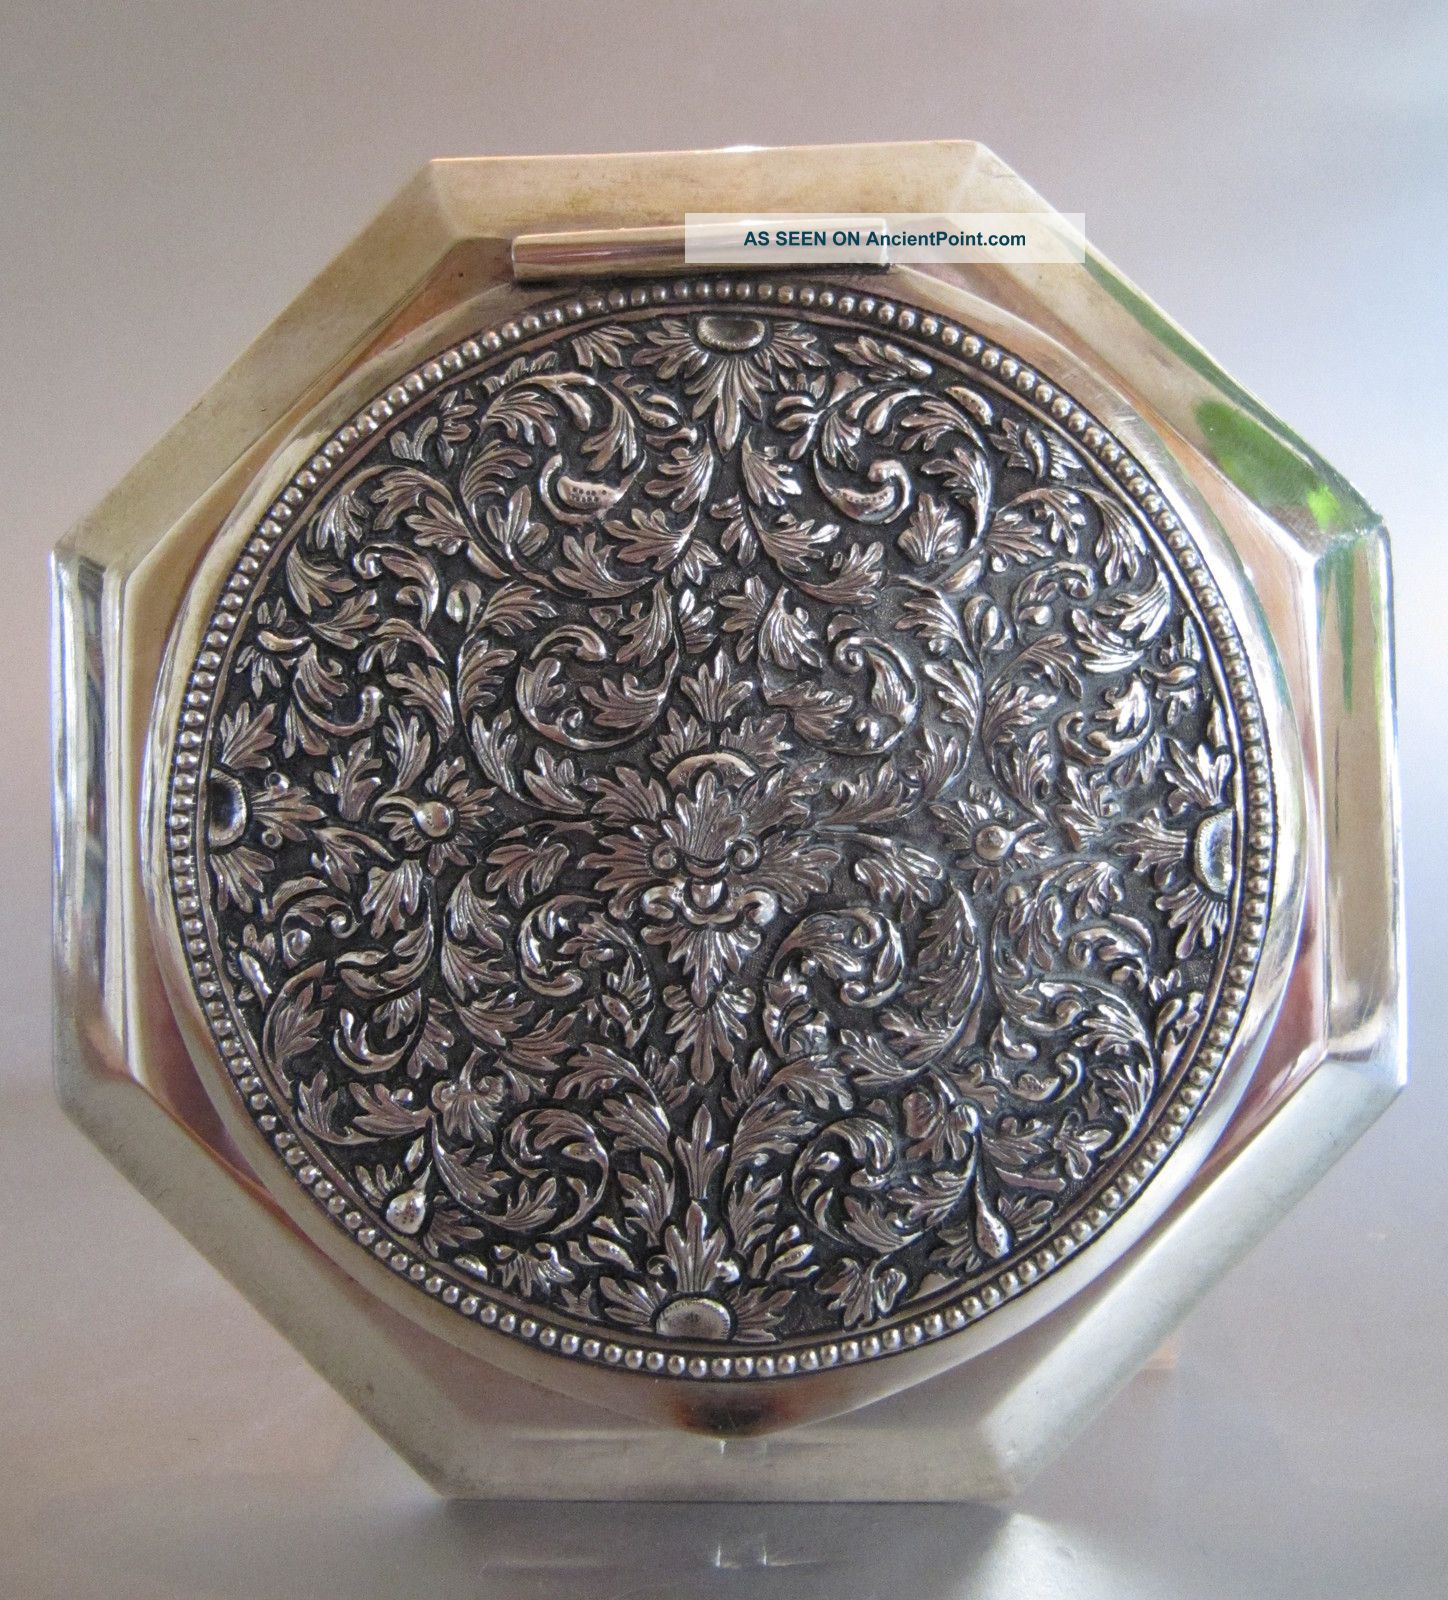 ‹ (•¿•) › An Antique Persian Solid Silver Powder Compact / Box Other photo